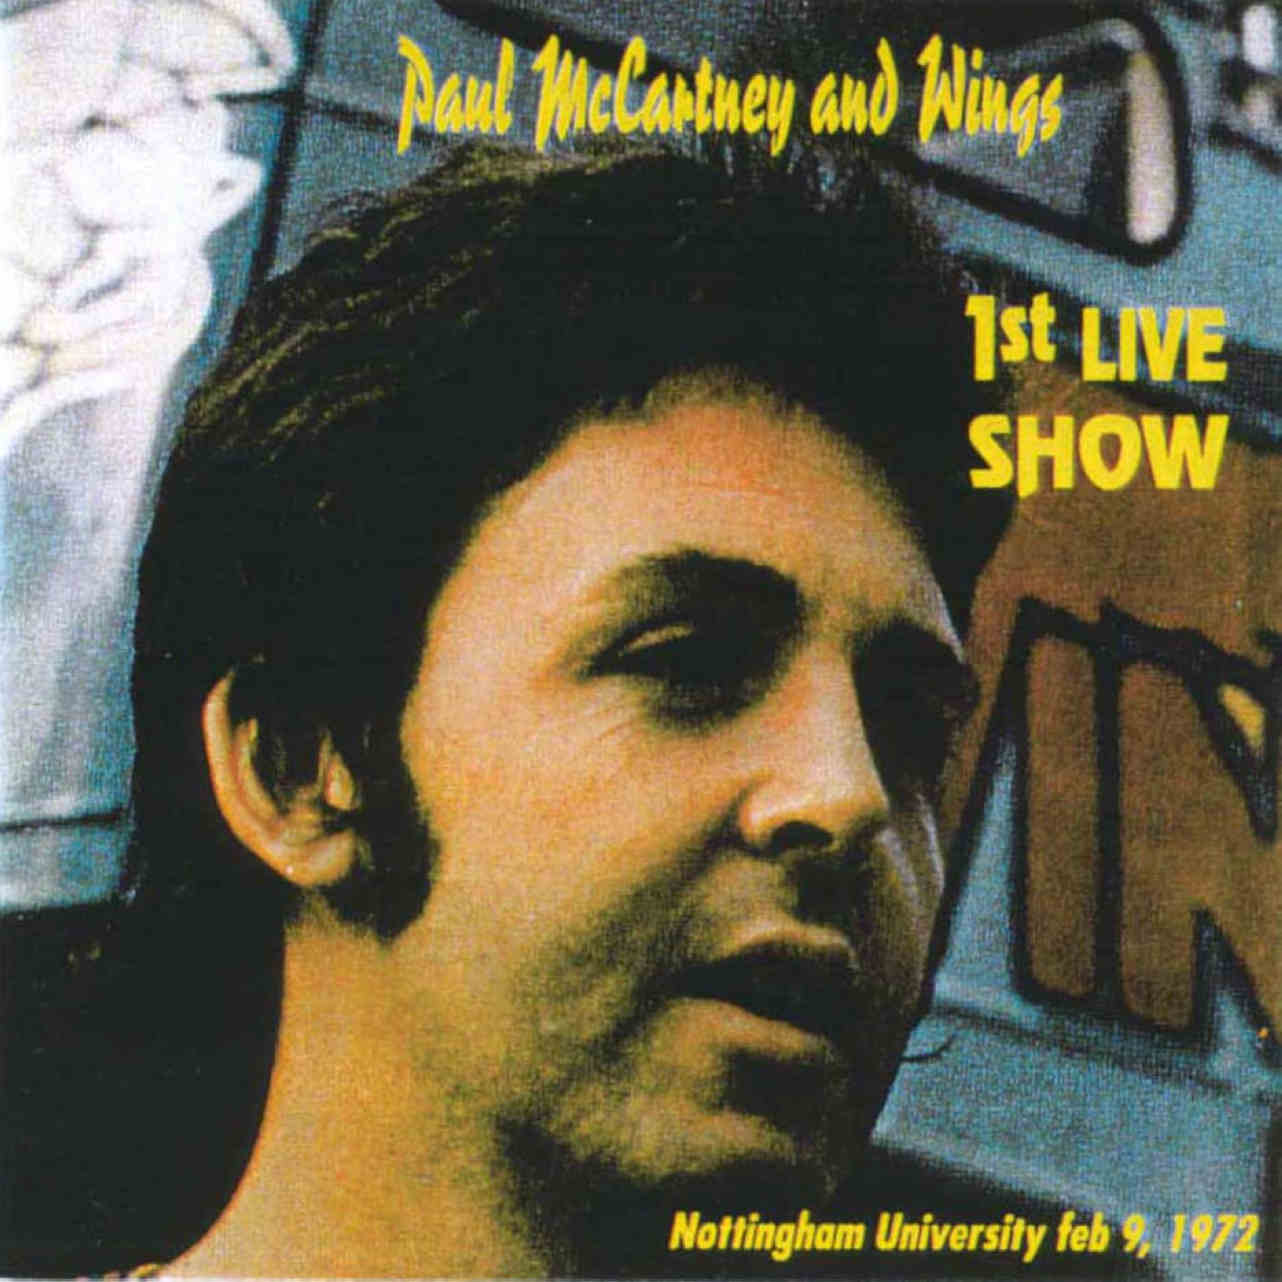 Paul McCartney & Wings: 1st Live Show. Hull, East Riding